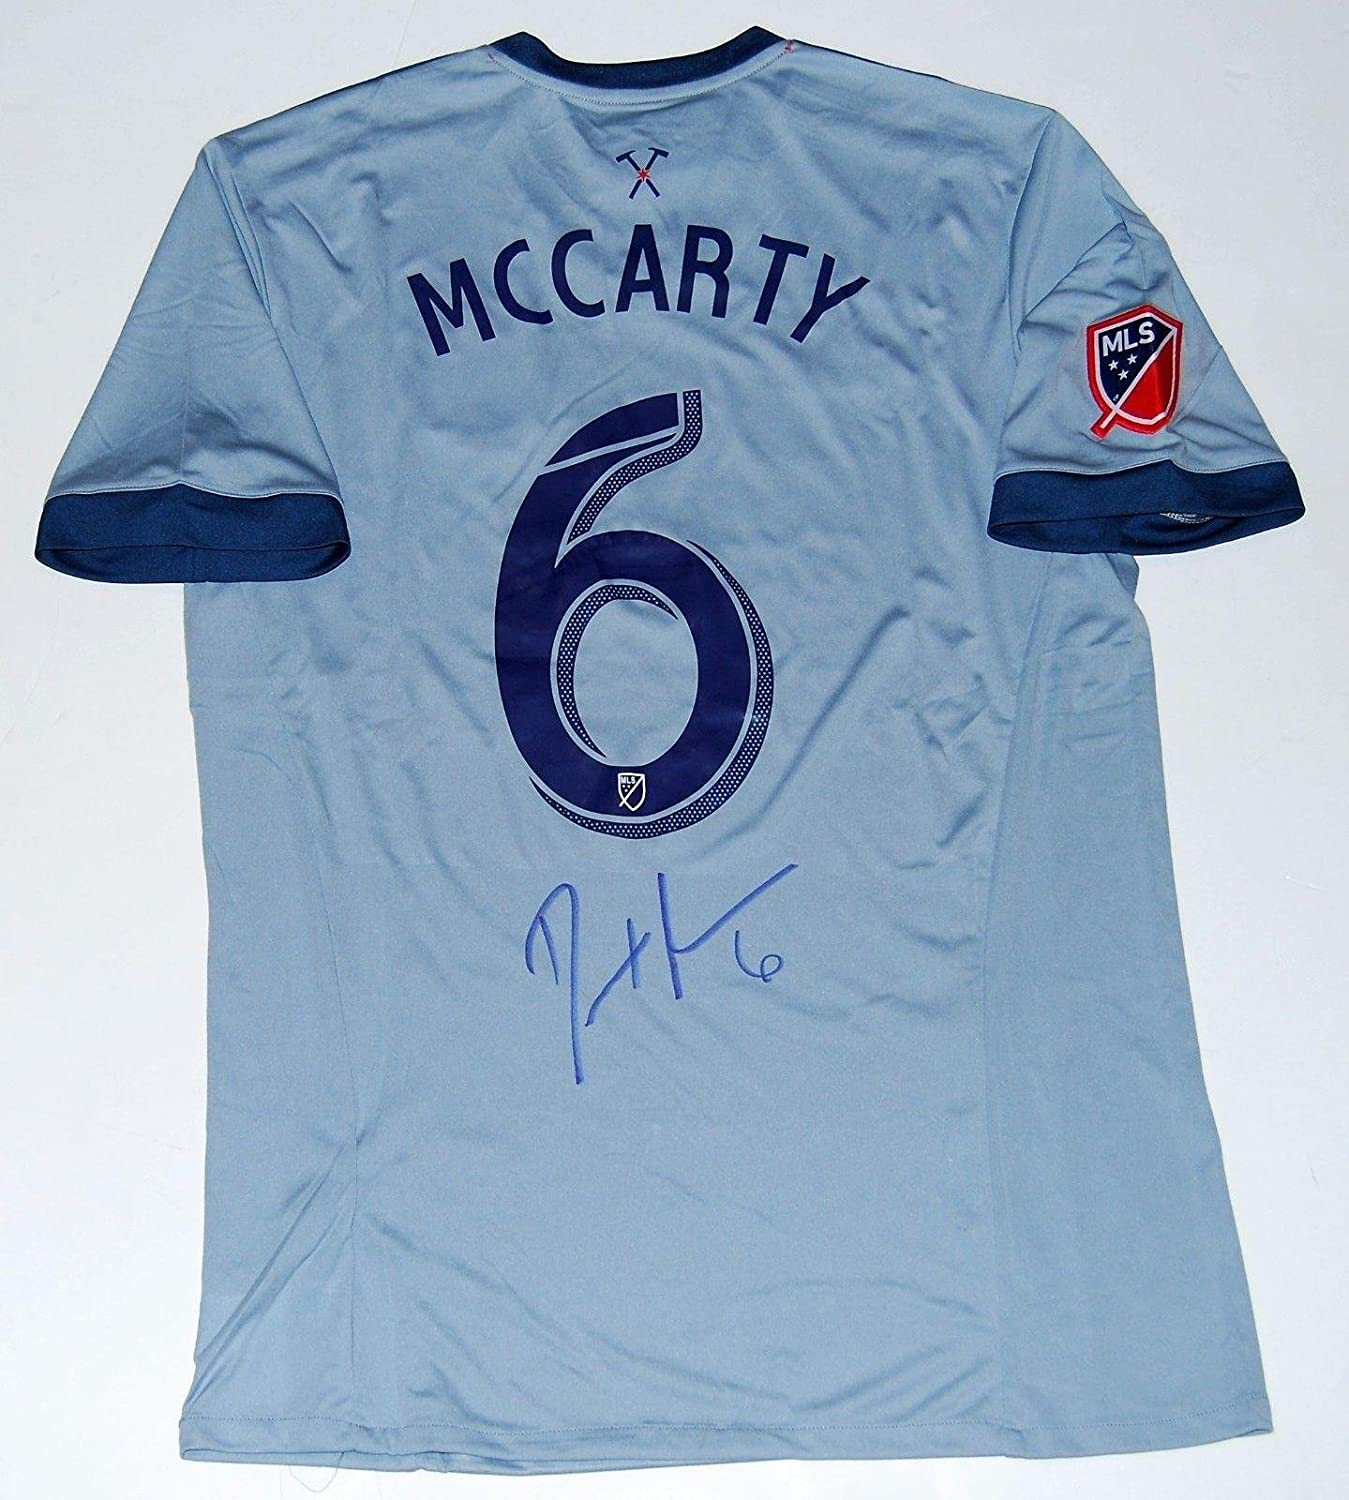 Dax Mccarty Signed Chicago Fire Mls Soccer Autographed Jersey W Coa Autographed Soccer Jerseys At Amazon S Sports Collectibles Store